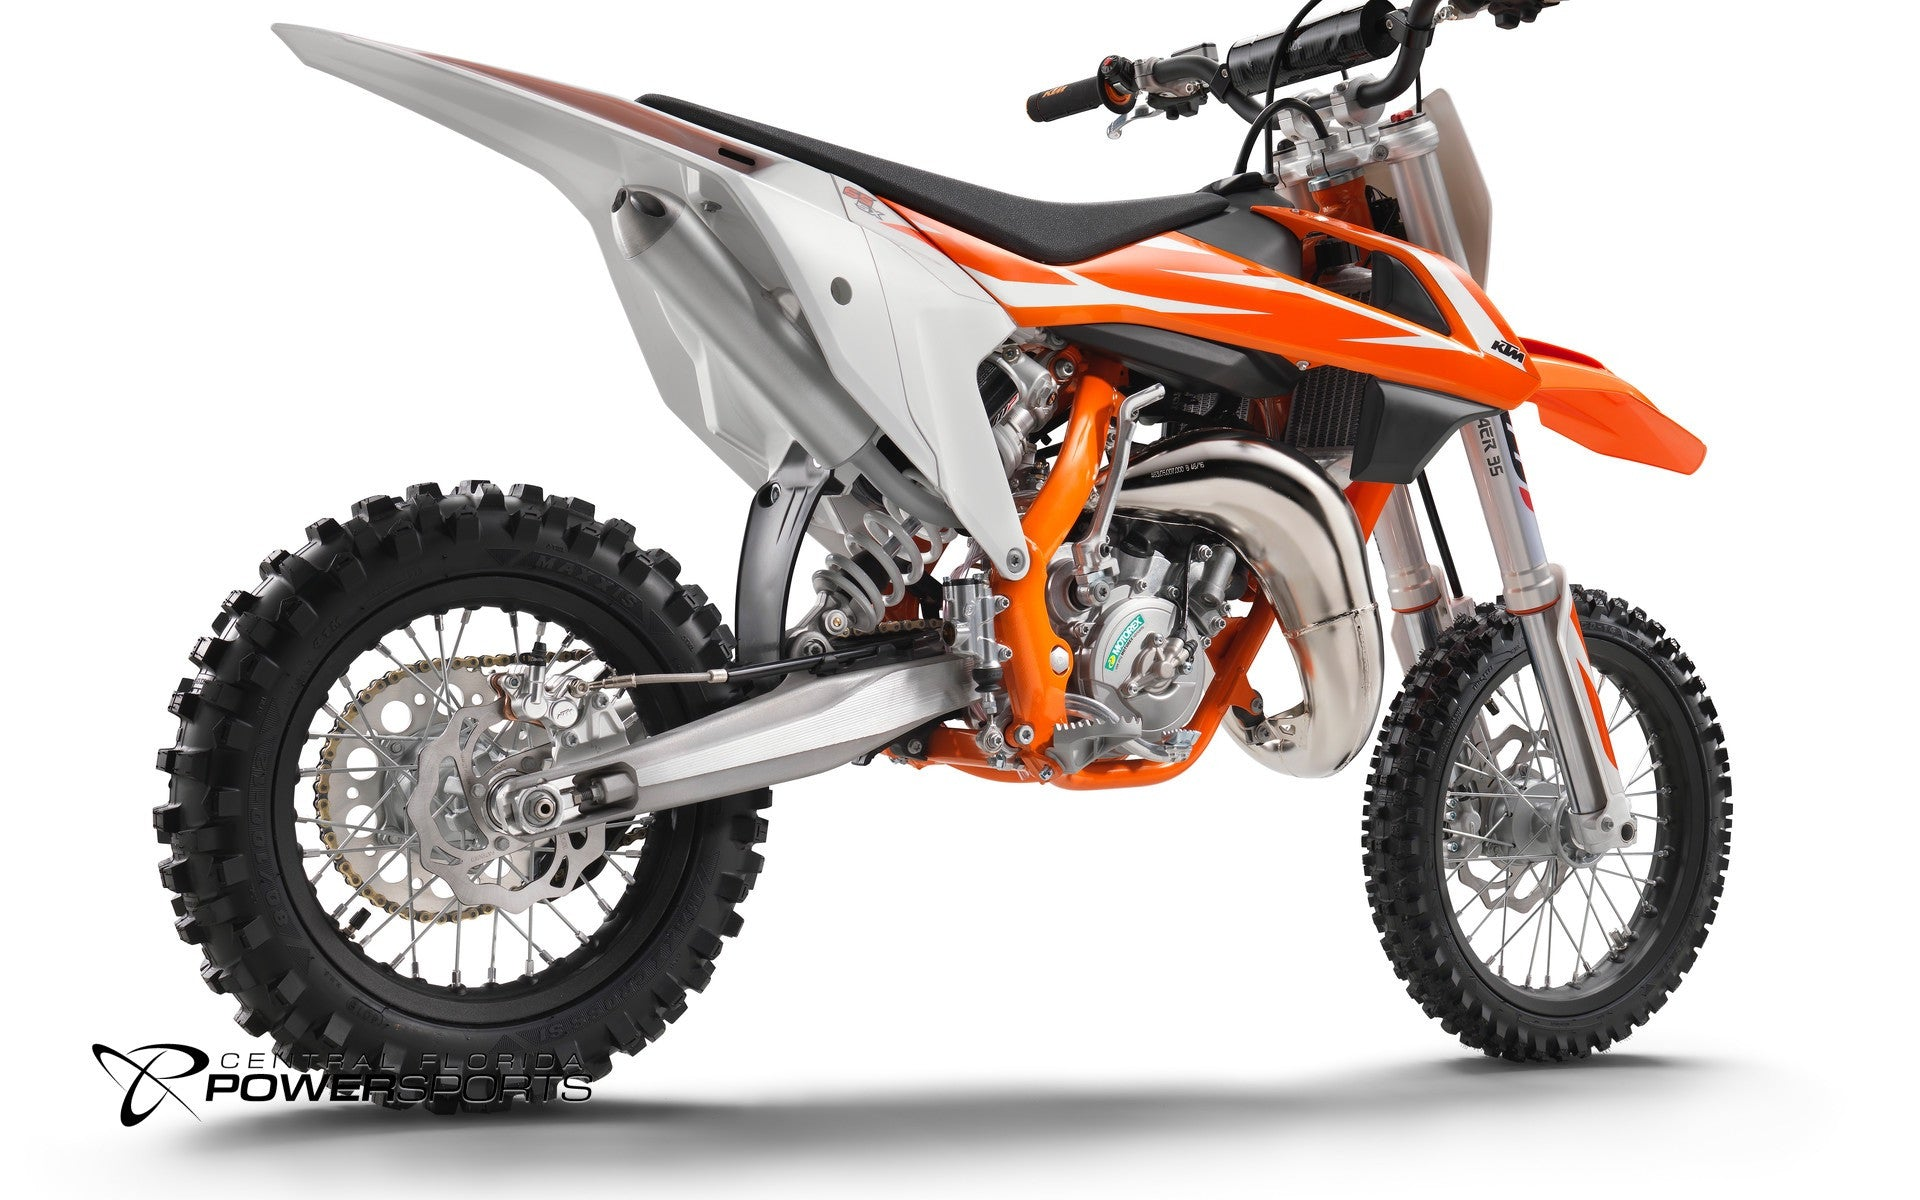 2018 ktm 65 sx motorcycle for young pilots 8 to 12 y.o. orlando